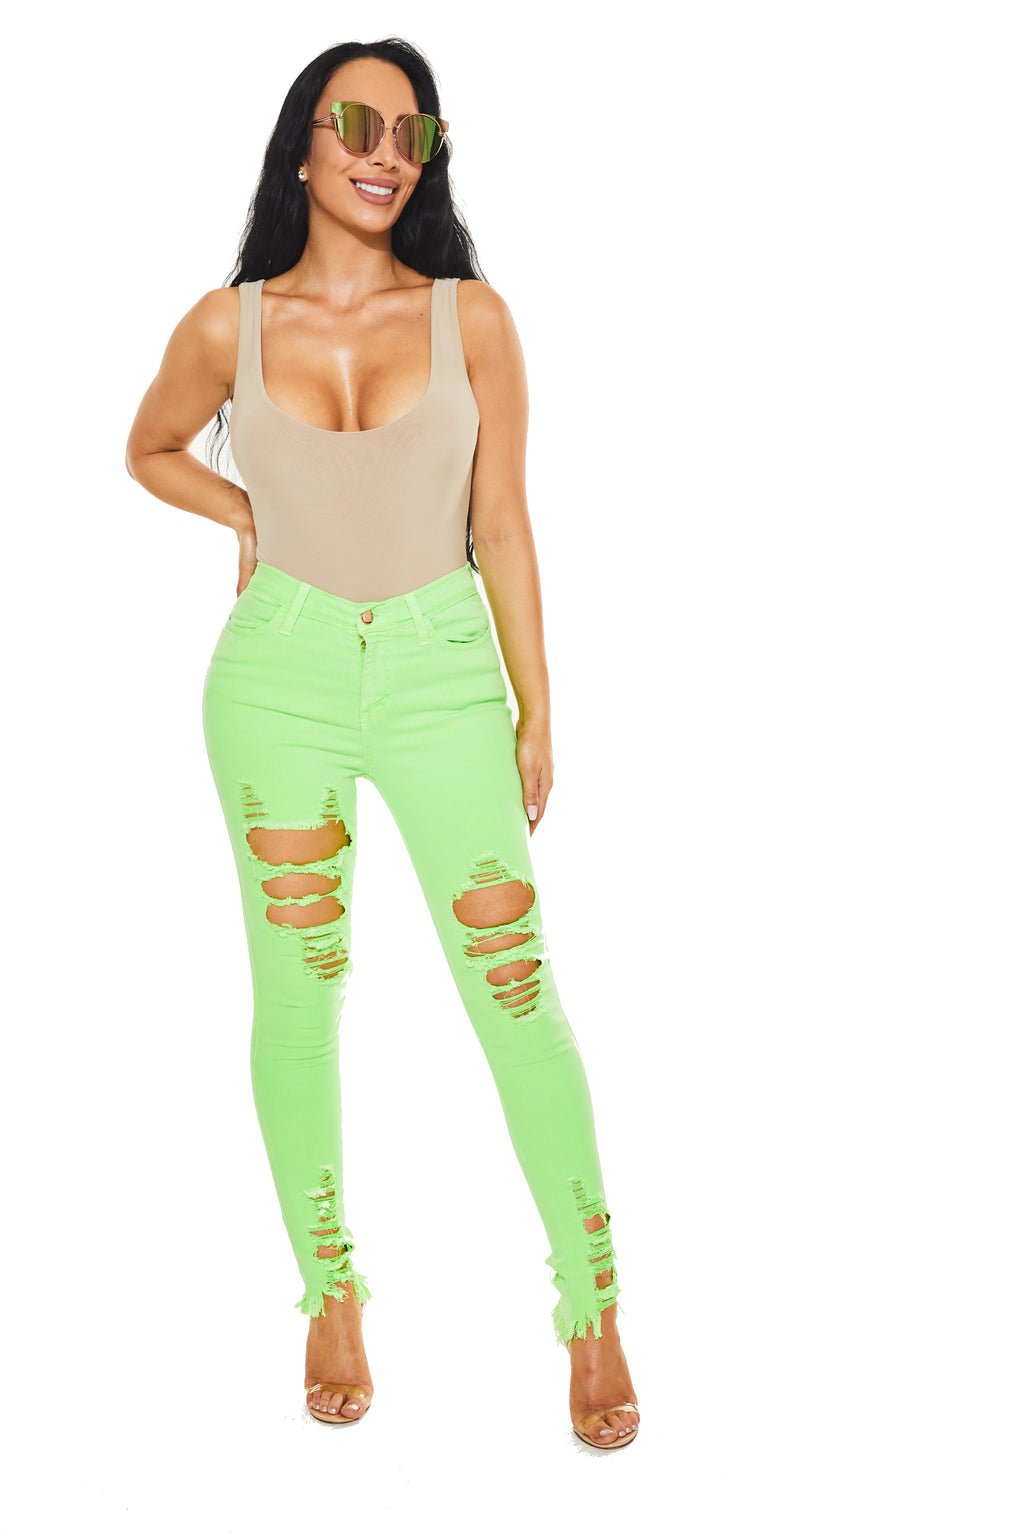 WATCH ME LEAVE JEANS - Neon Green - www.prettyboutique.com